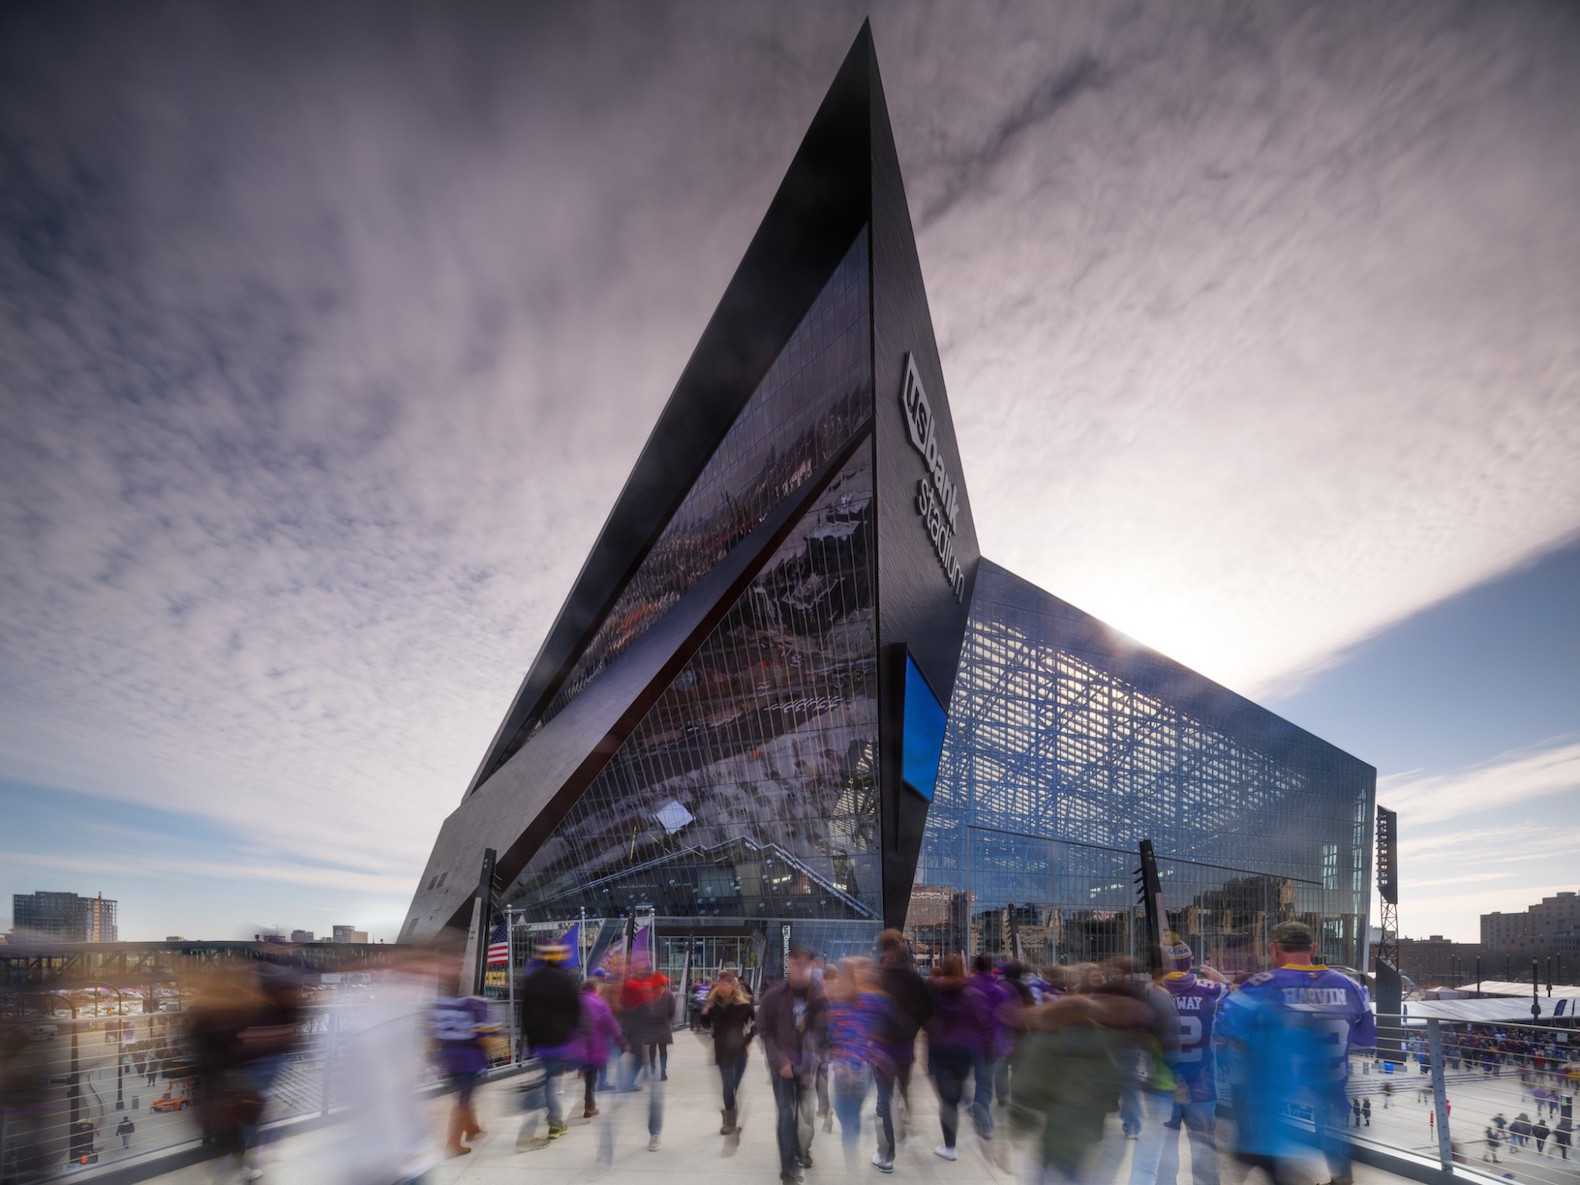 The 2018 Super Bowl stadium in Minnesota offsets 100% of its energy